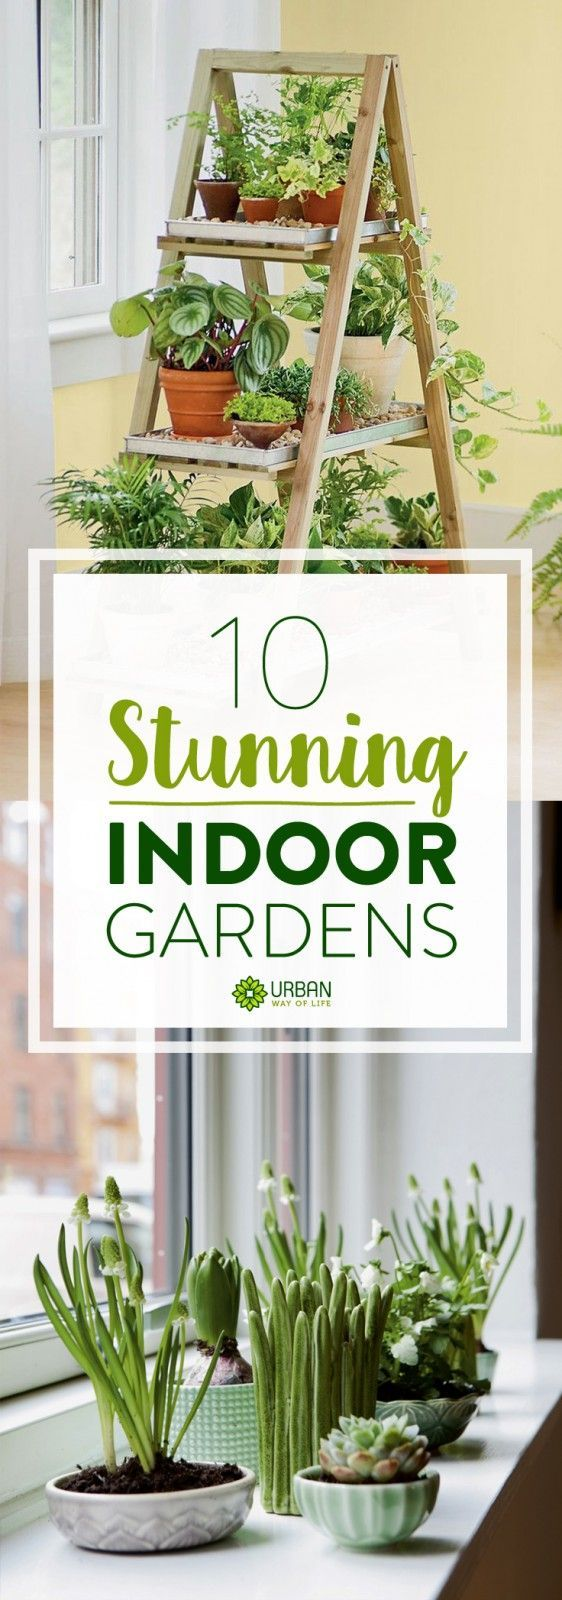 Get inspired 10 stunning indoor gardens gardens indoor for Indoor garden design